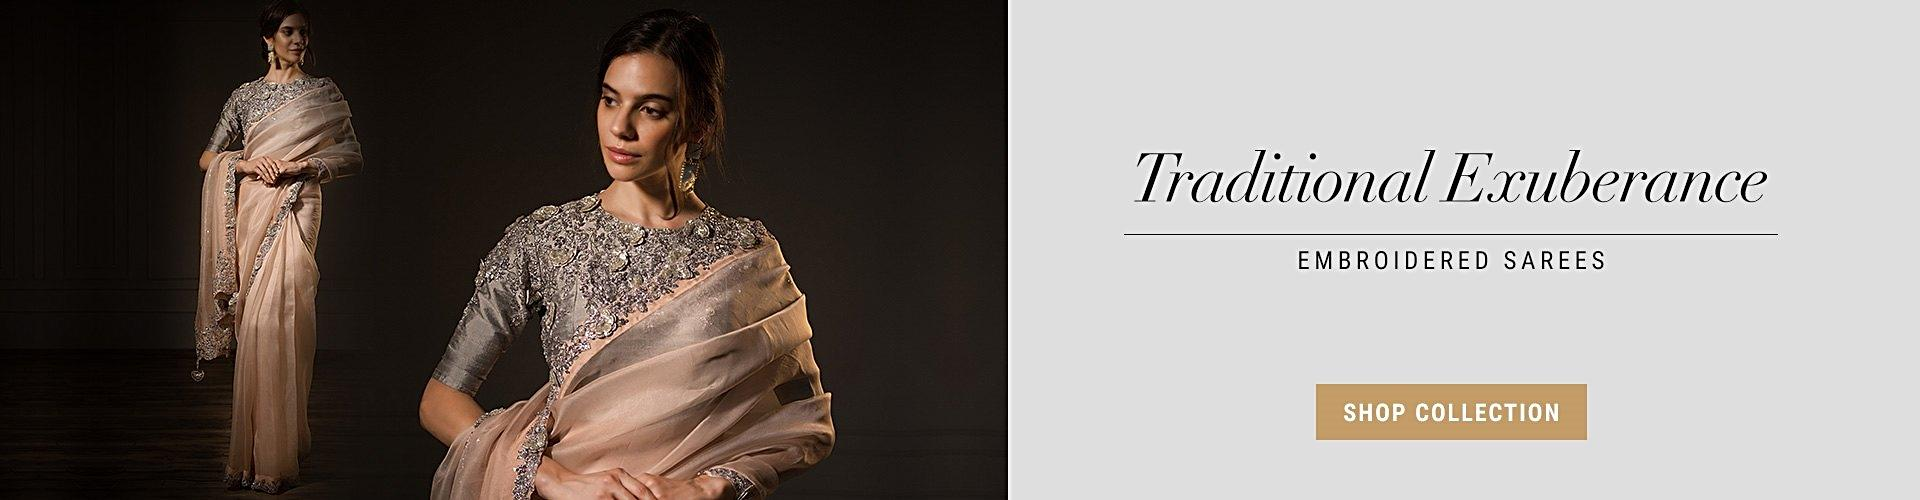 Embroidery Sarees Collection